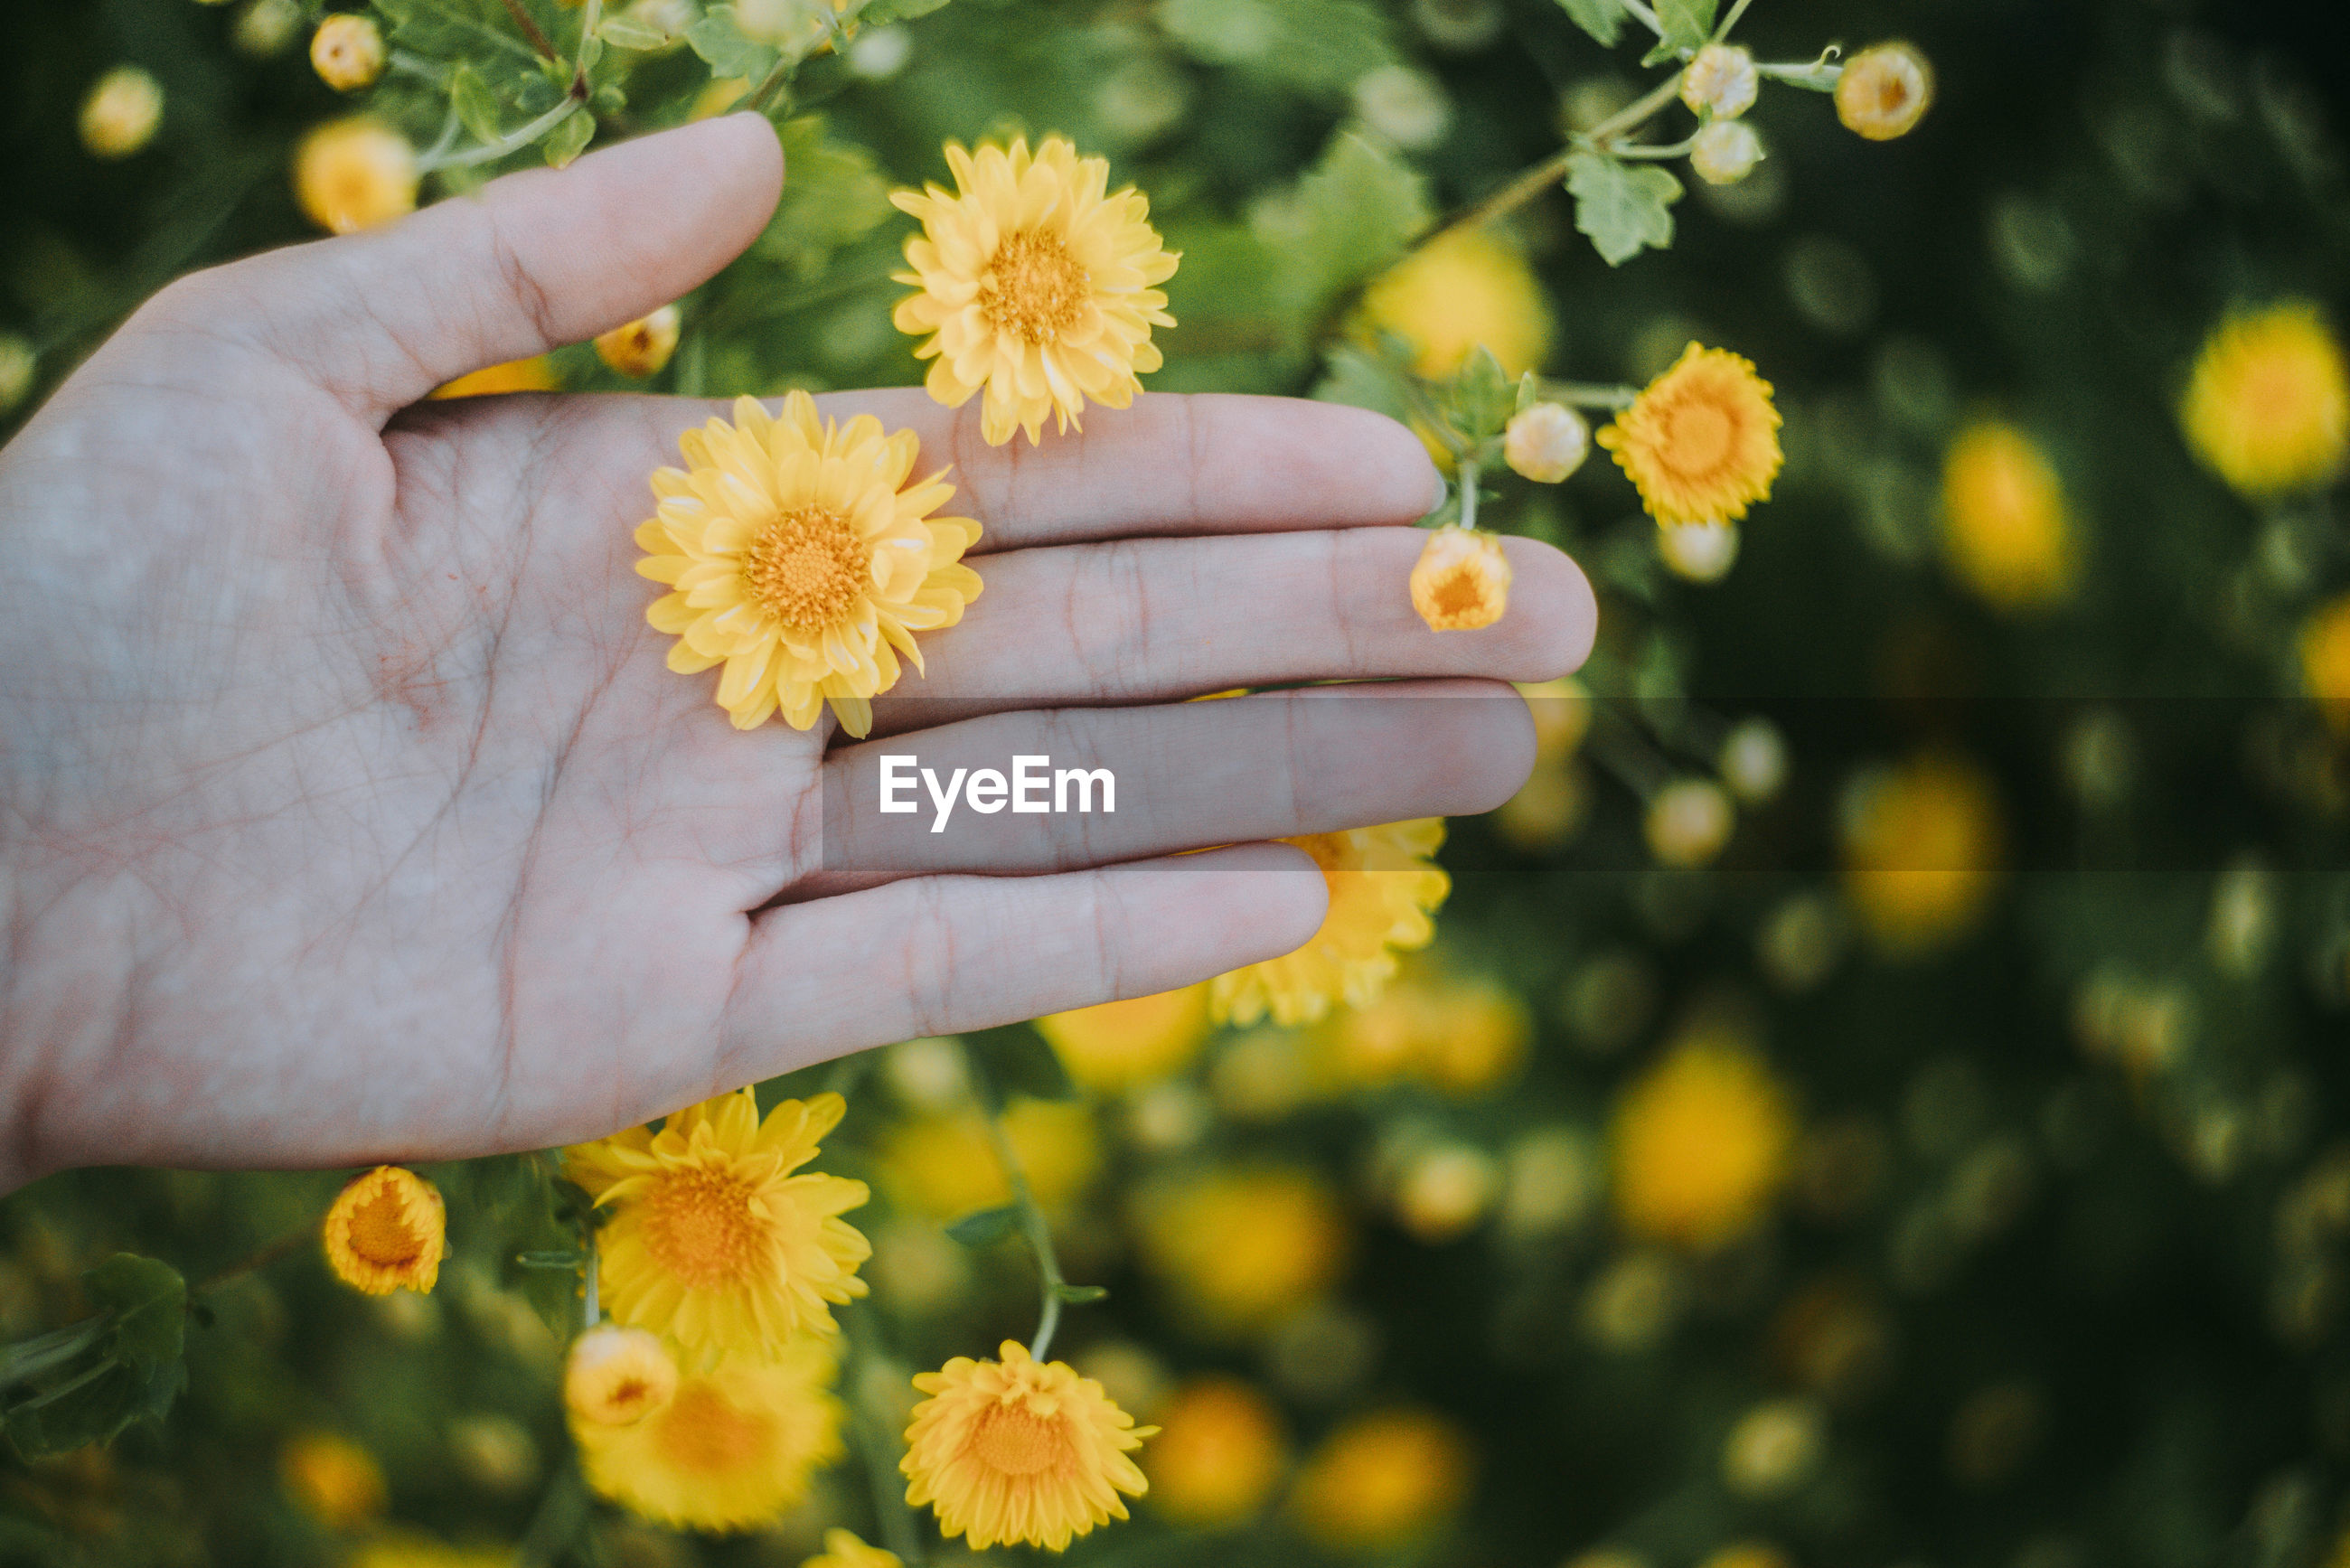 Close-up of human hand holding yellow flower growing on plant